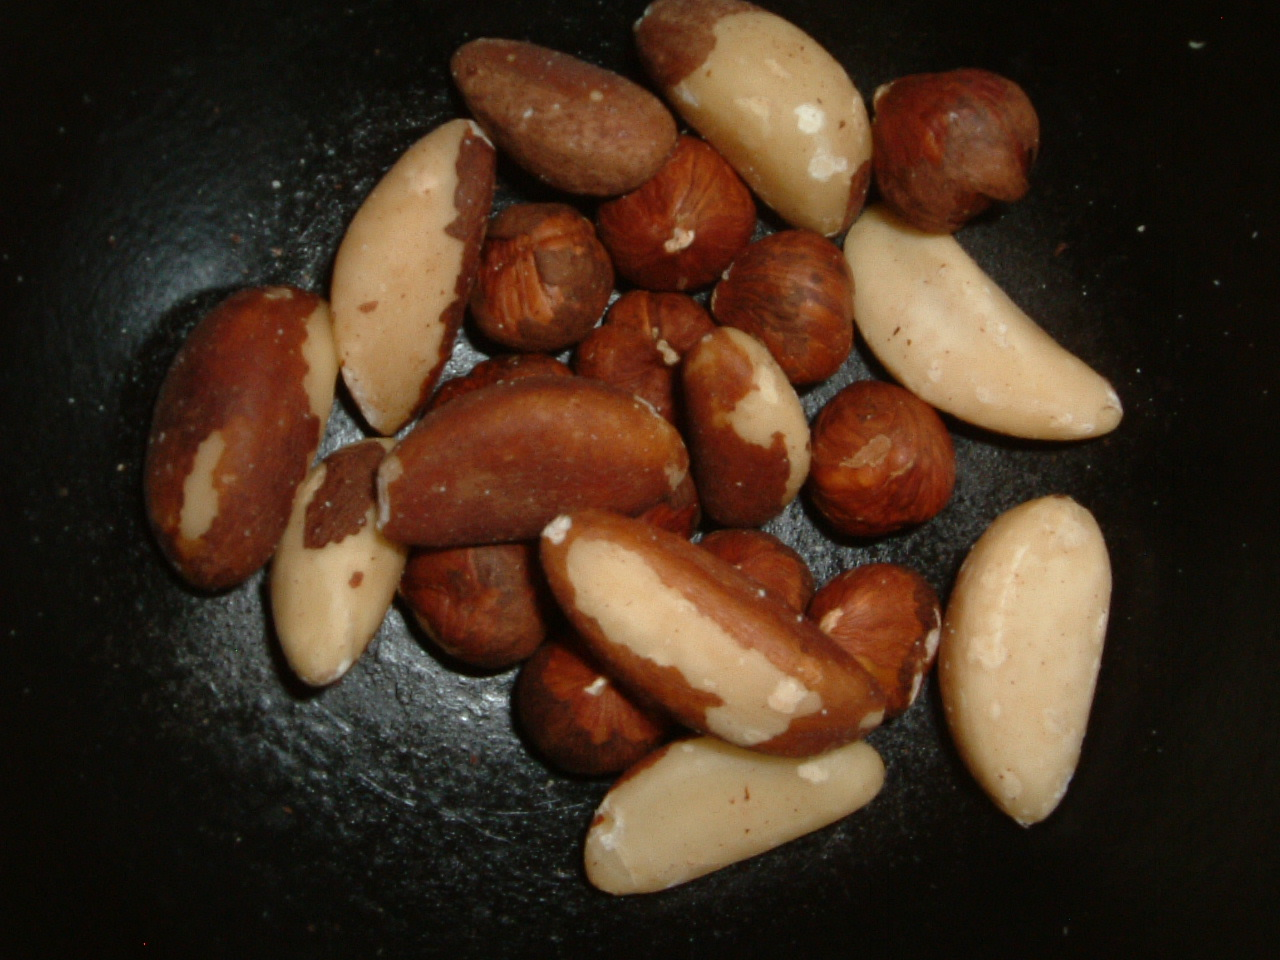 Hydroxyzine 3615.doc - Is It Safe To Eat Nuts During Pregnancy